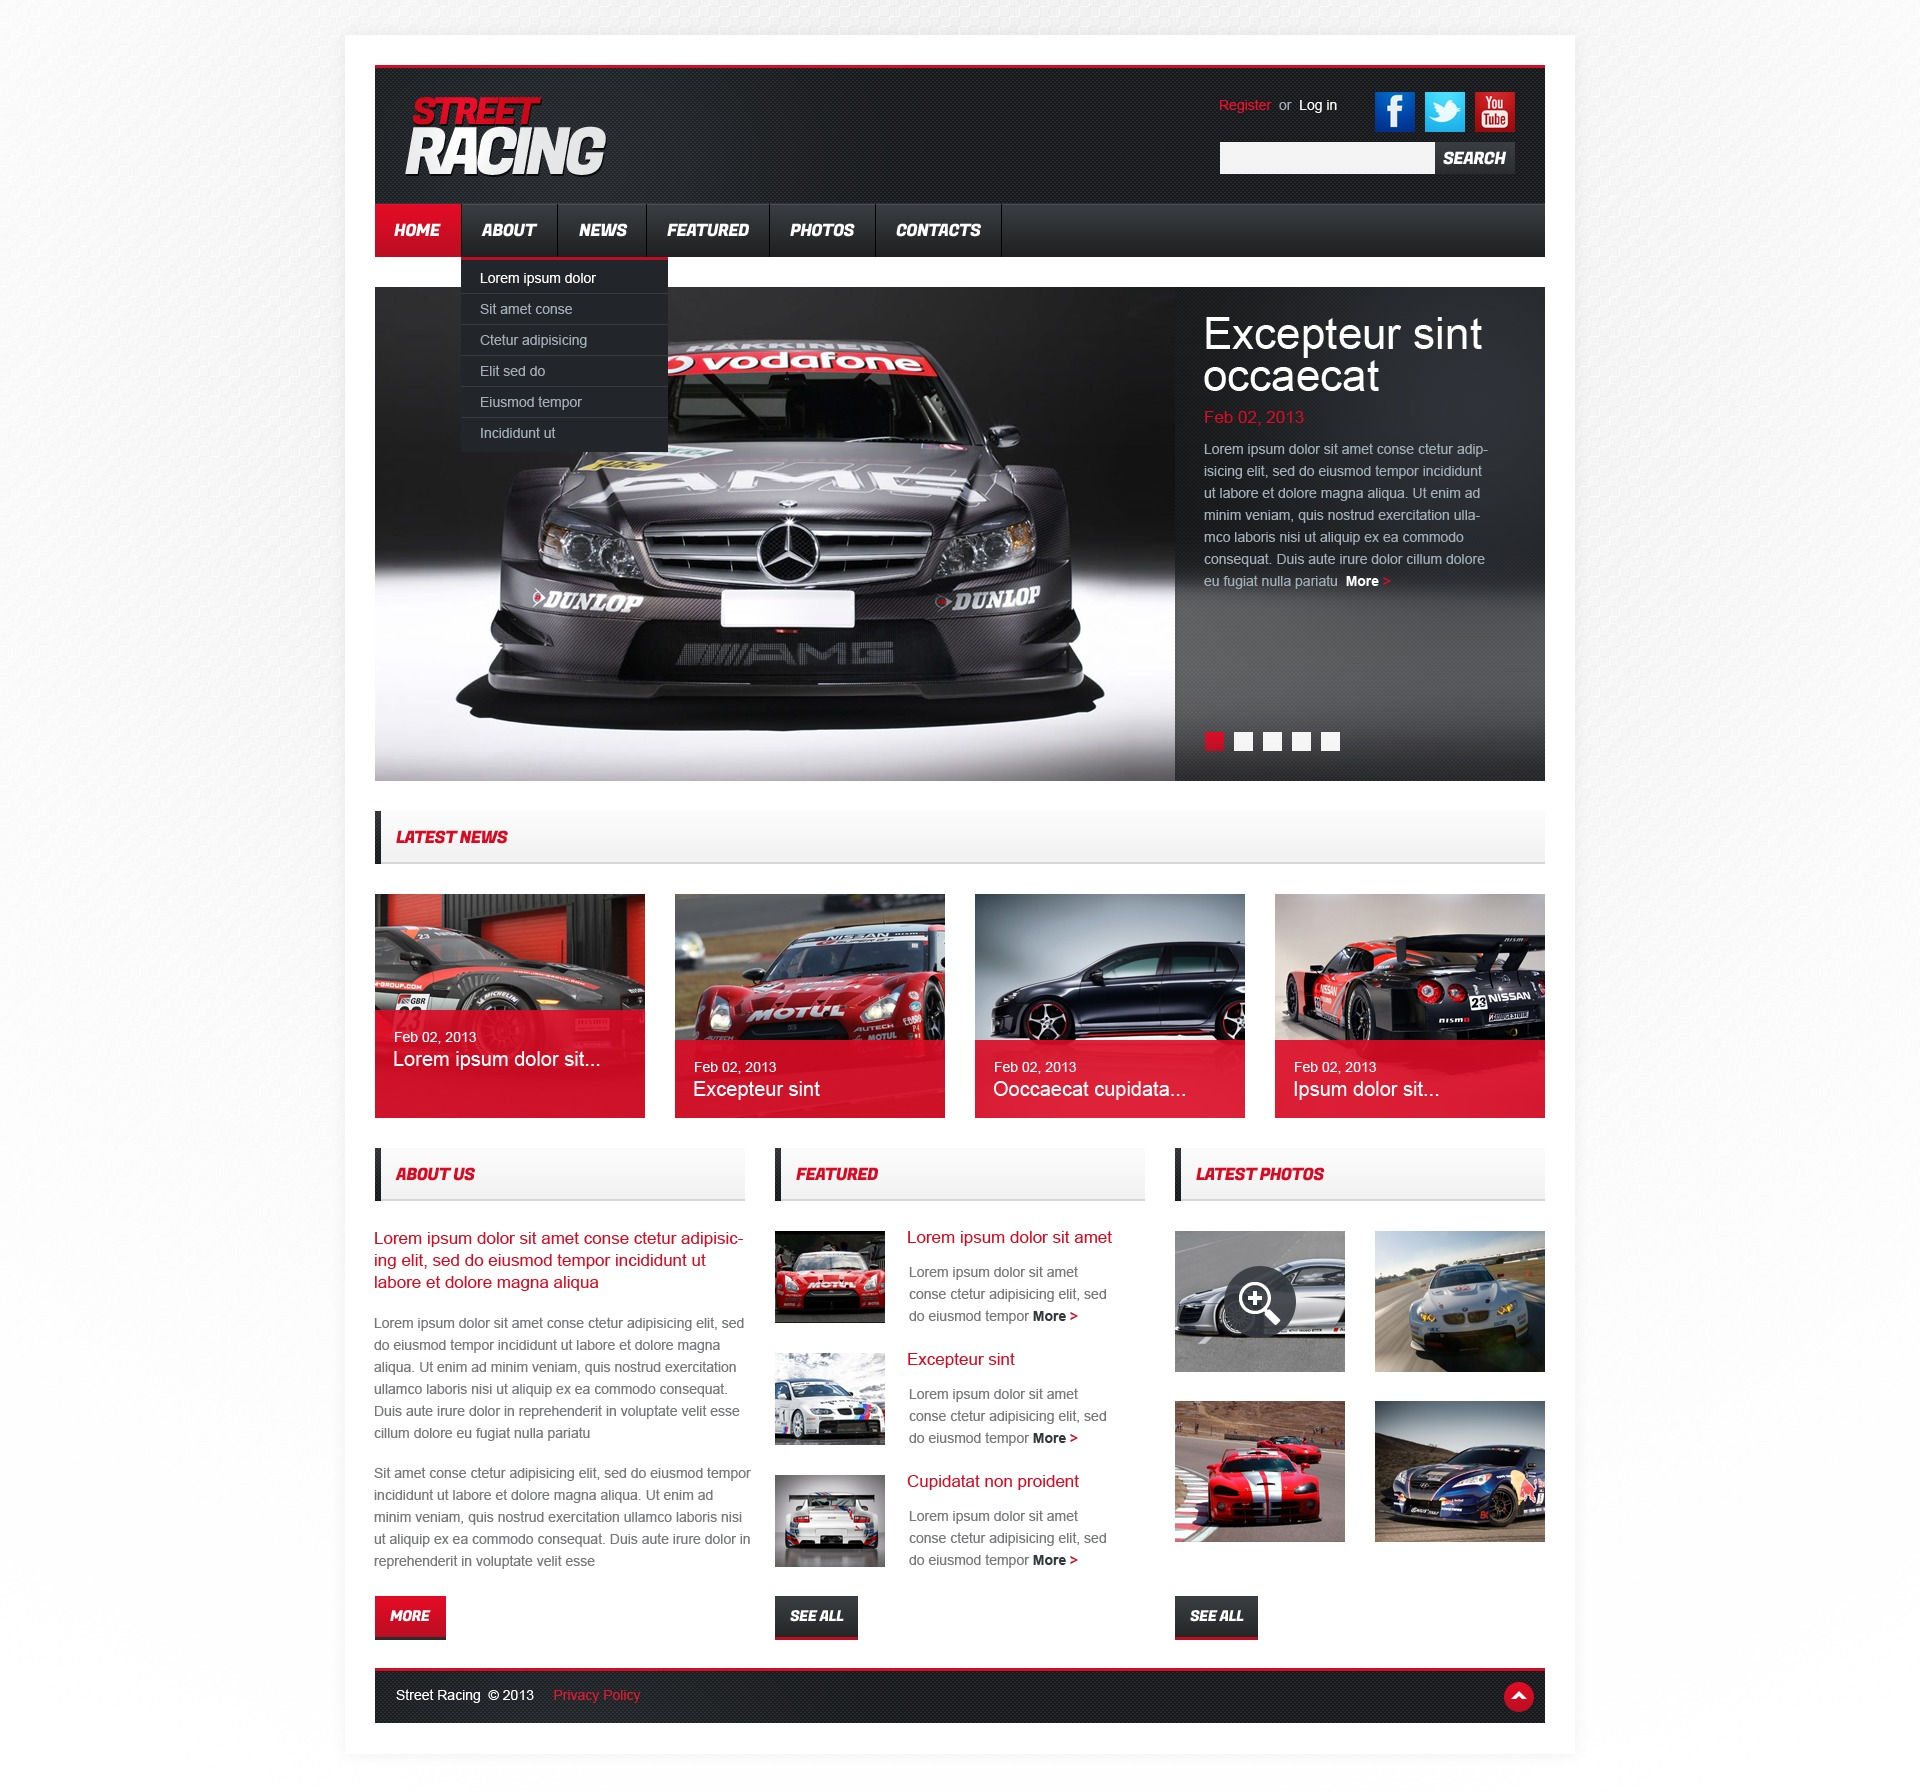 Modèle Web adaptatif pour site de course automobile #42121 - screenshot